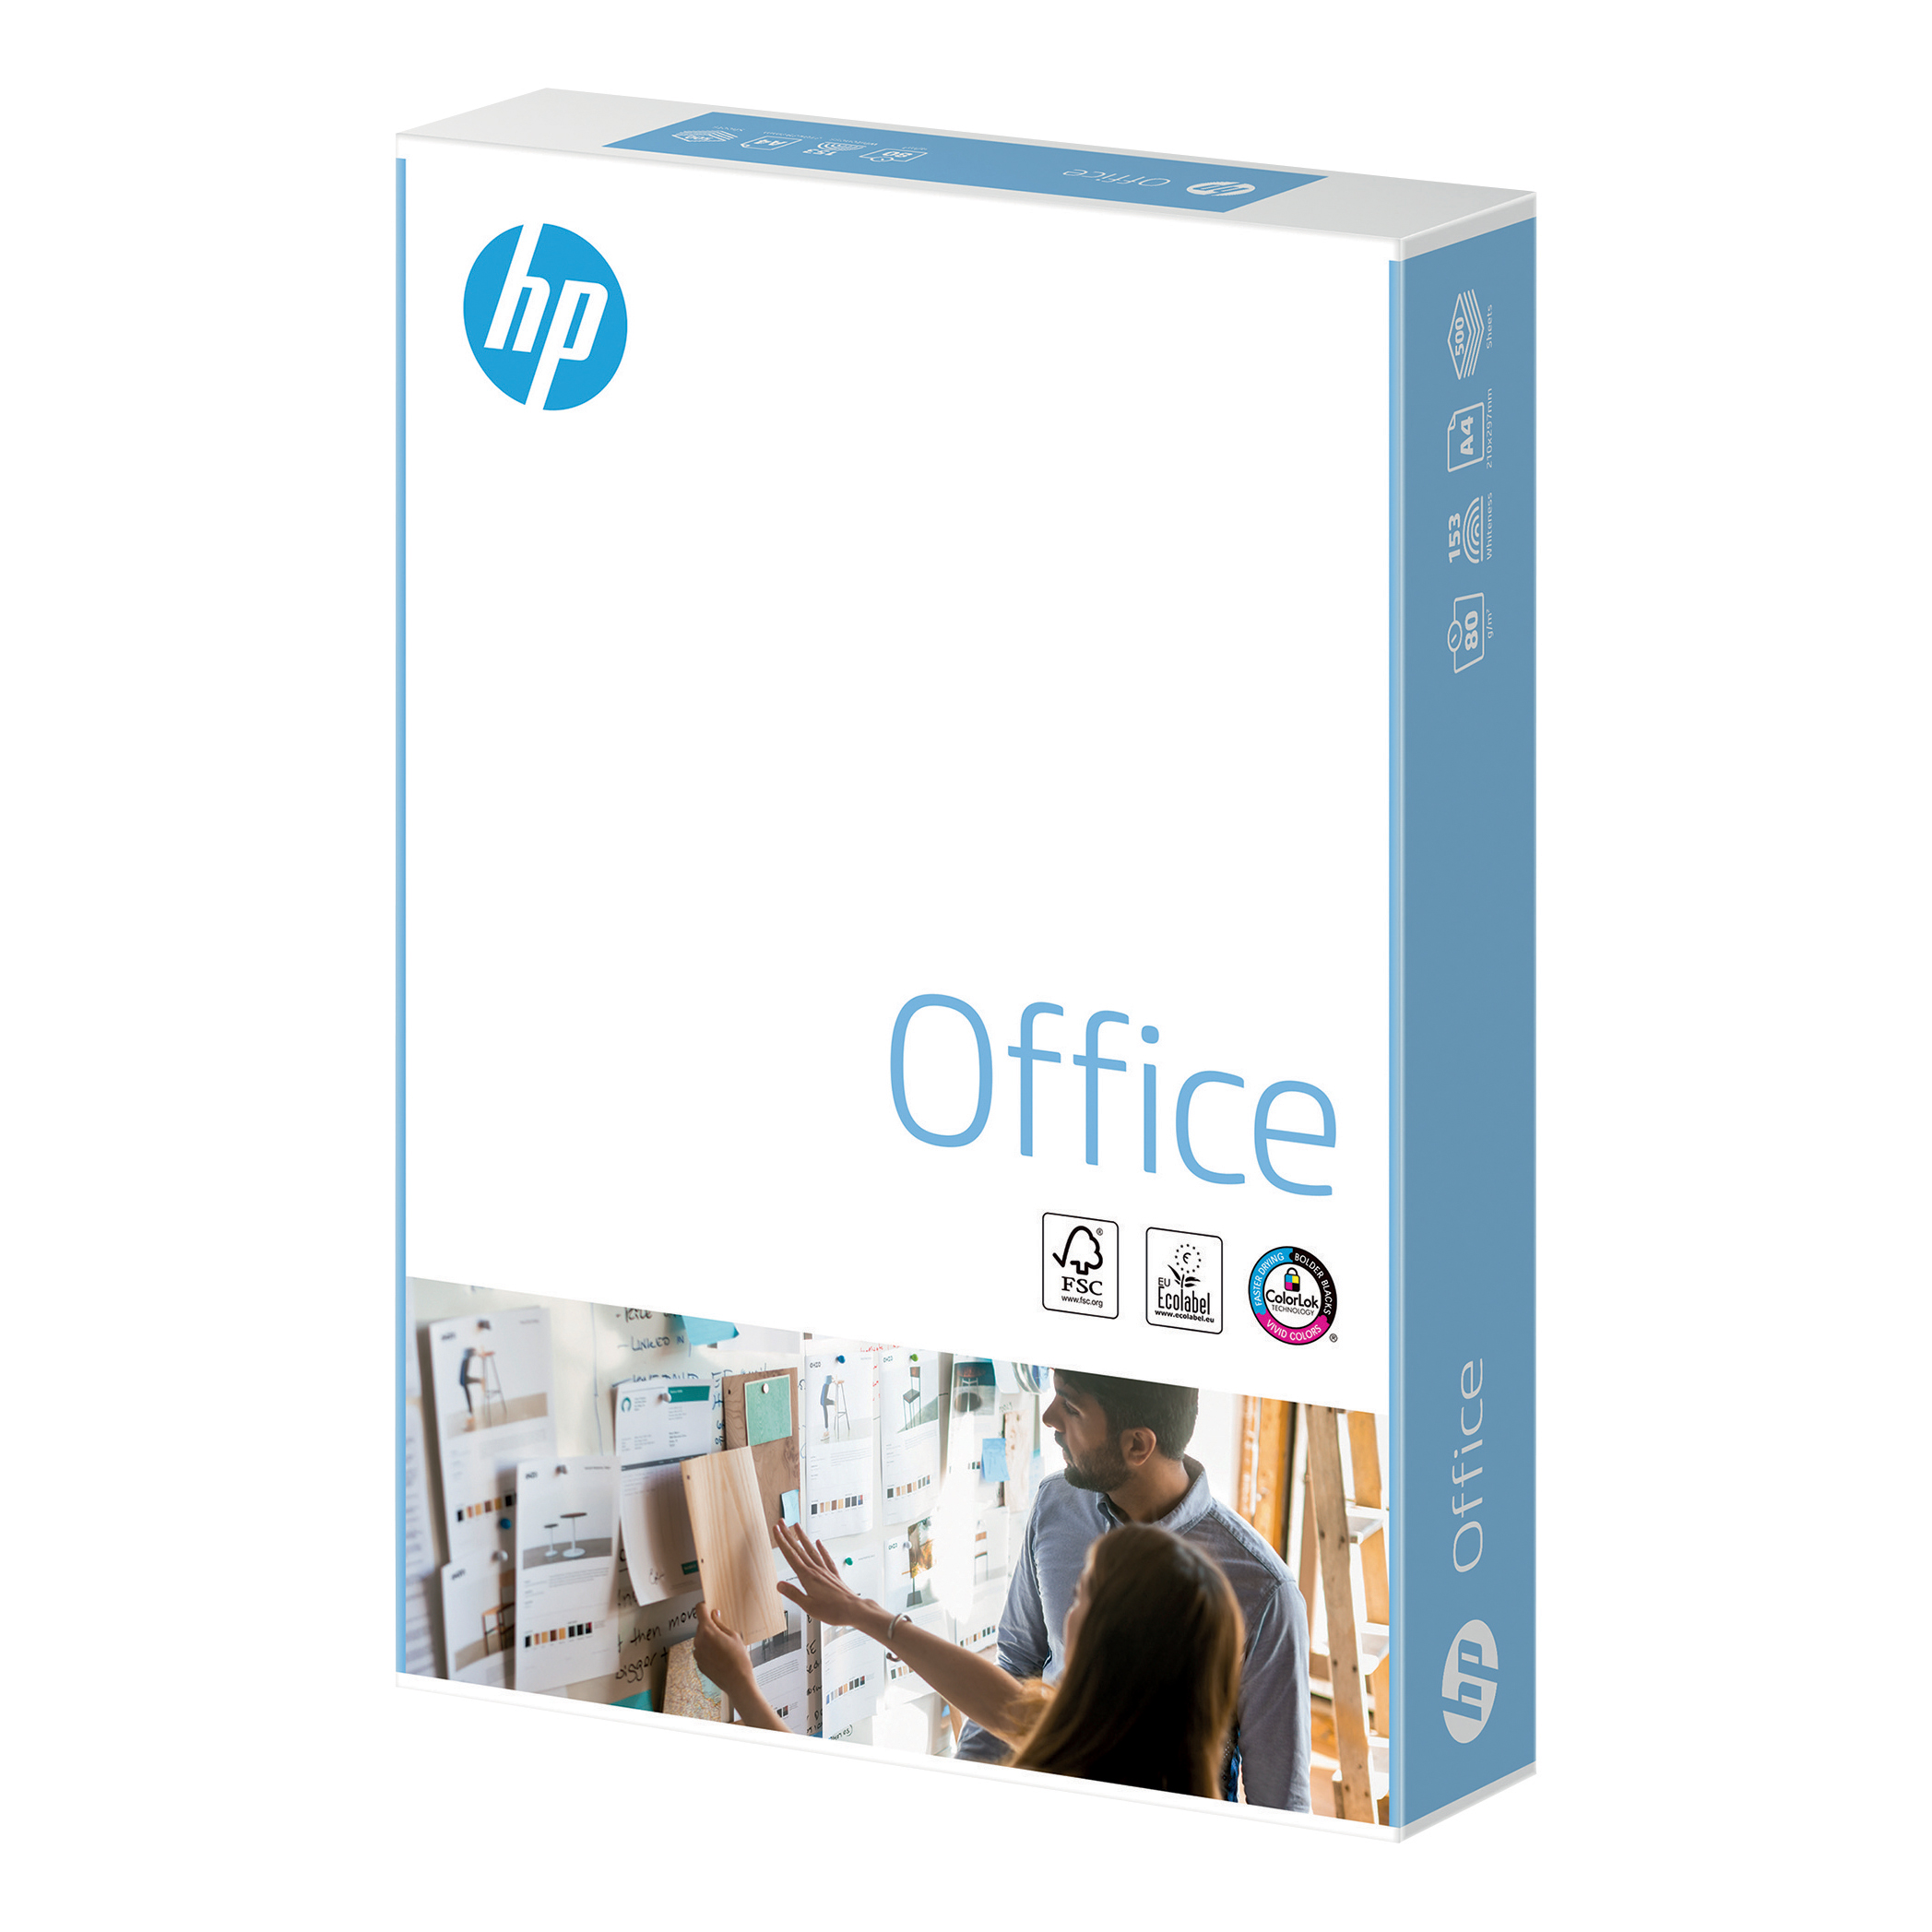 Hewlett Packard HP Office Paper FSC Colorlok 5x Ream-wrapped pks 80gsm A4 White Ref 93595 2500 Sheets